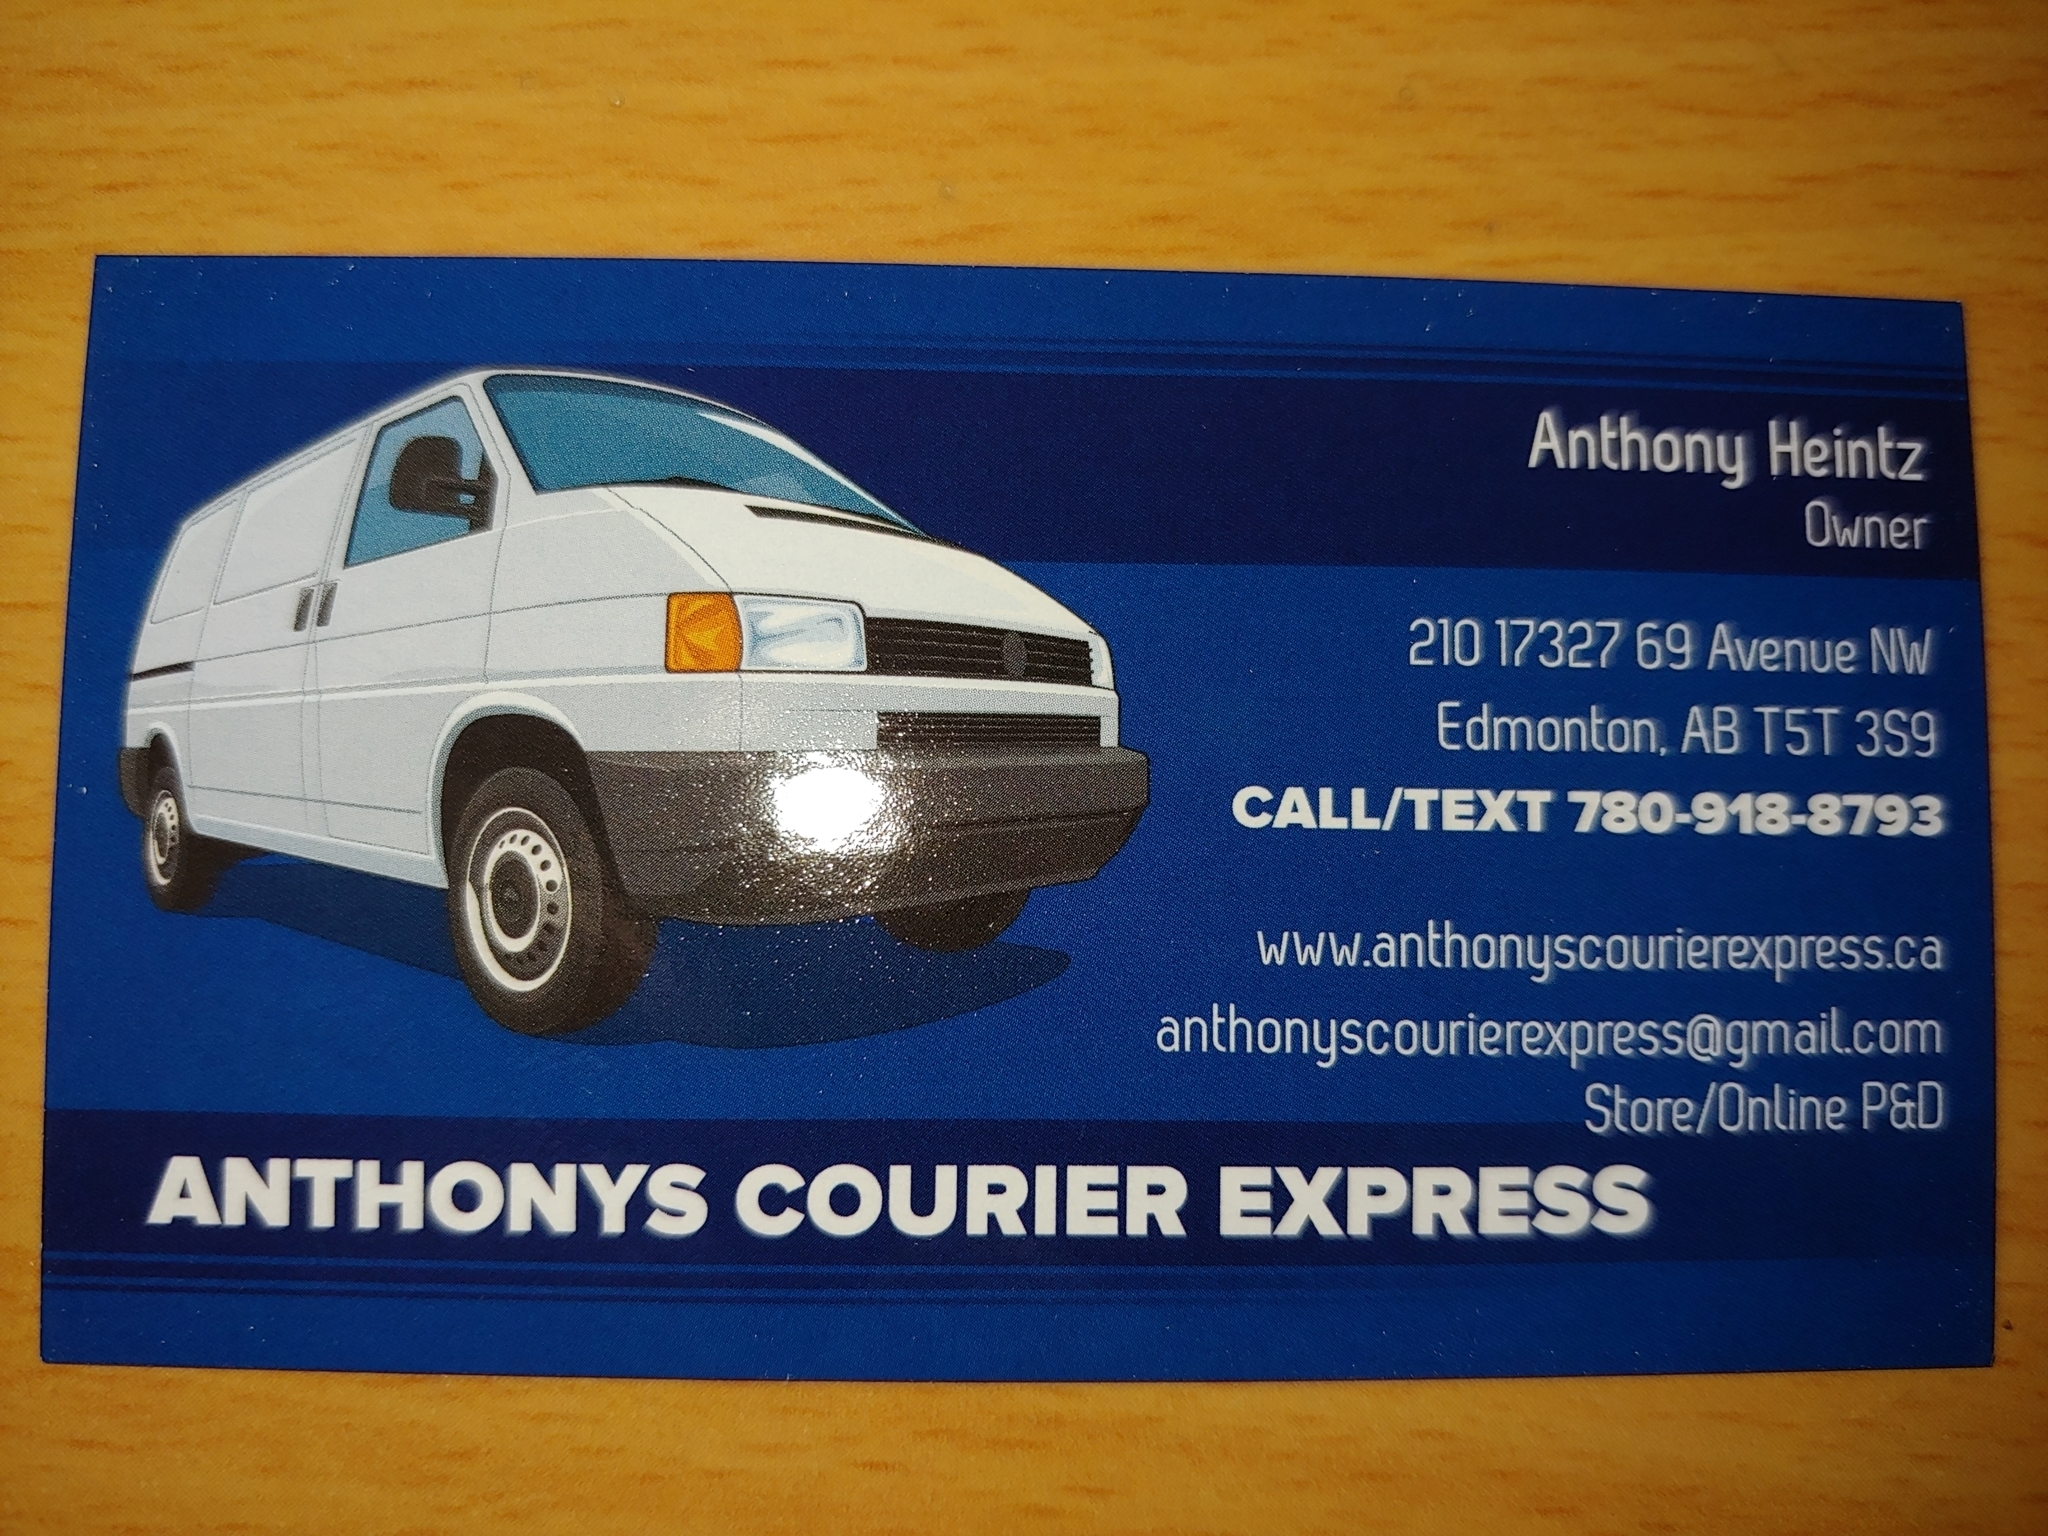 Anthony's Courier Express